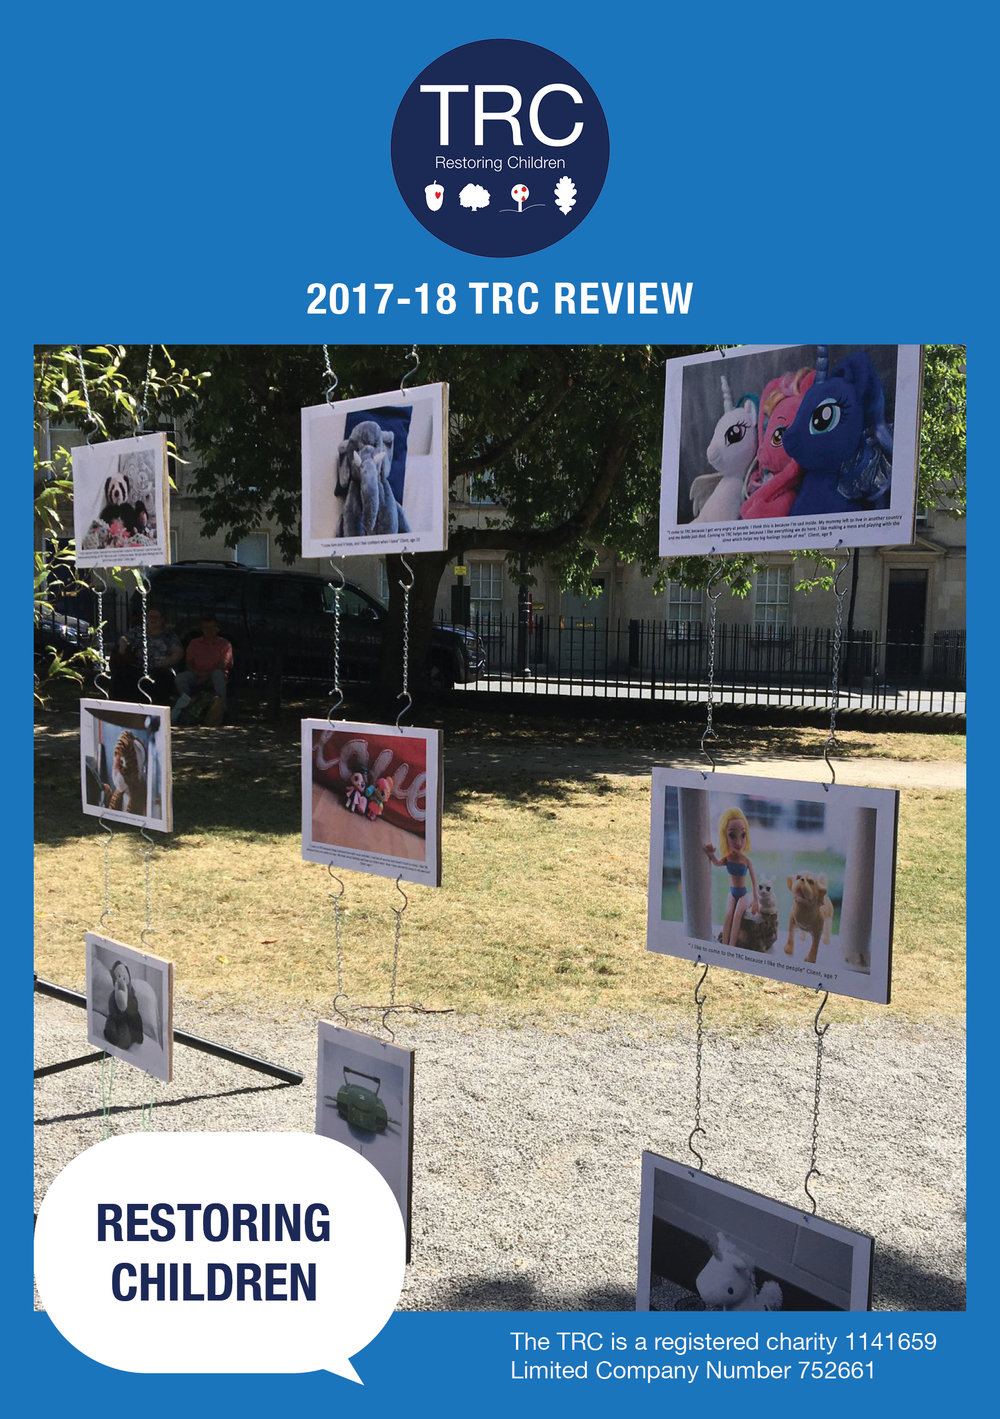 TRC_review_2017_18_page1.jpg